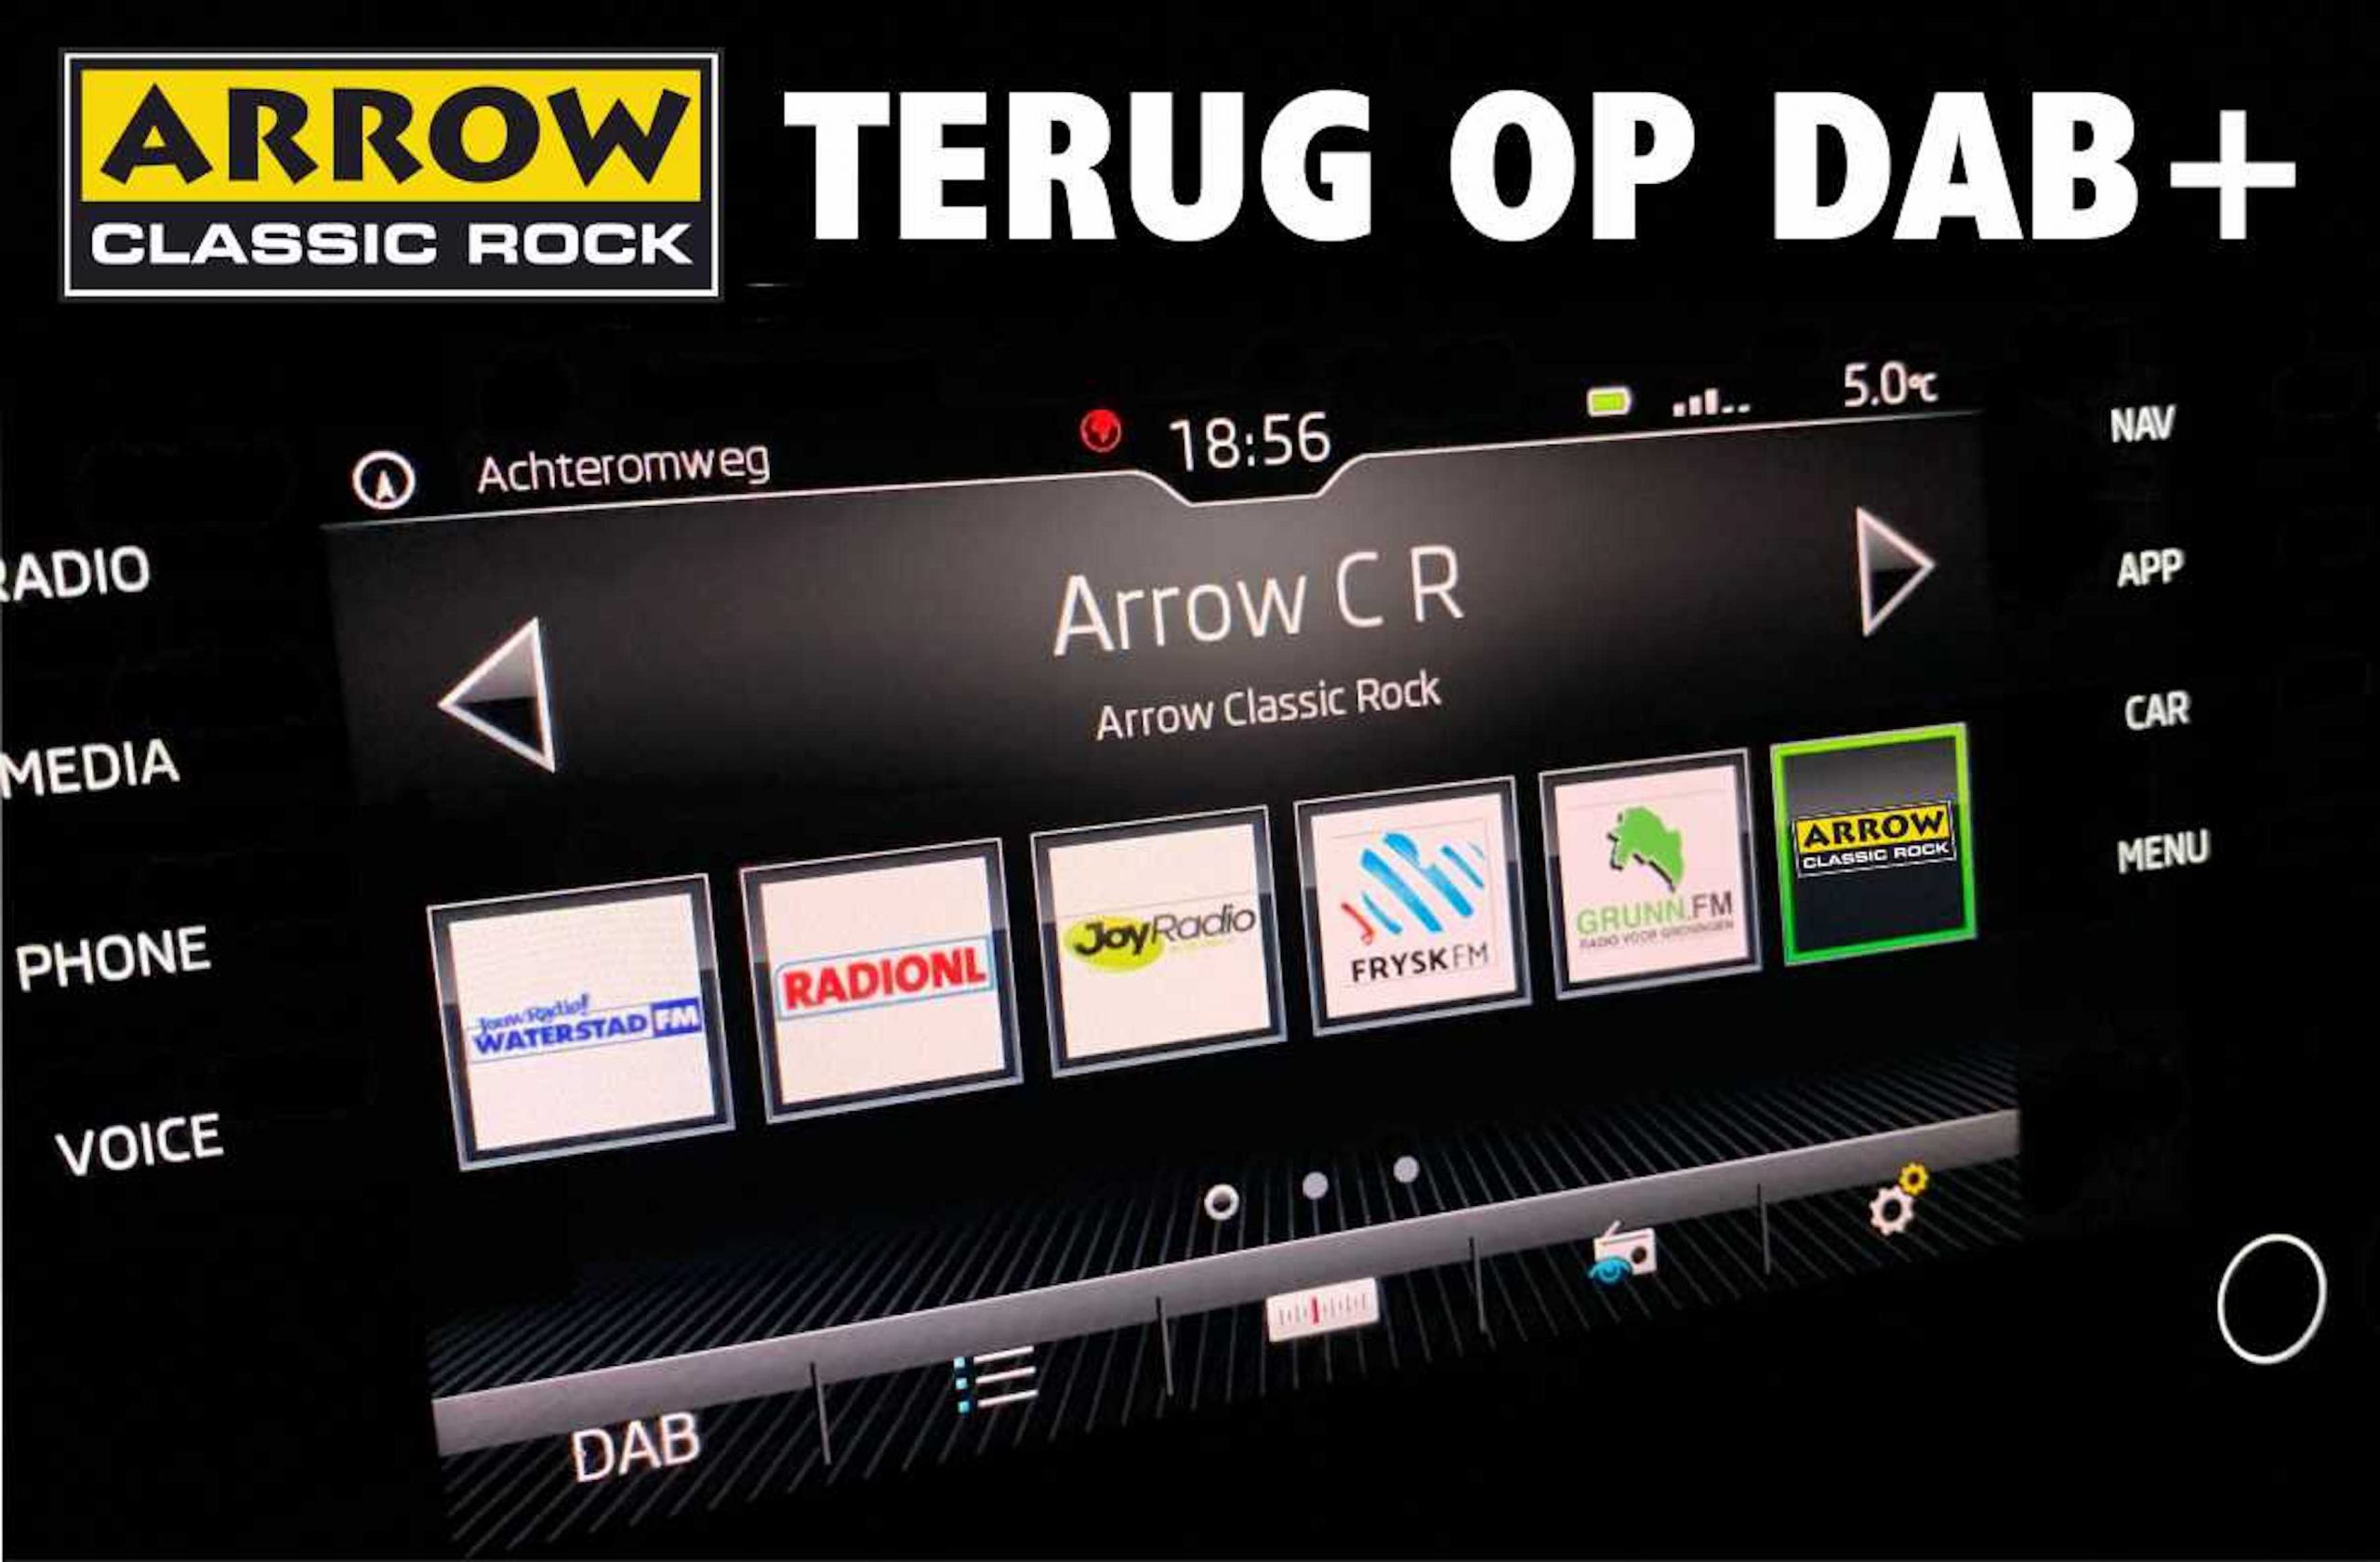 Arrow Classic Rock auf DAB+ (Foto: Arrow Classic Rock)